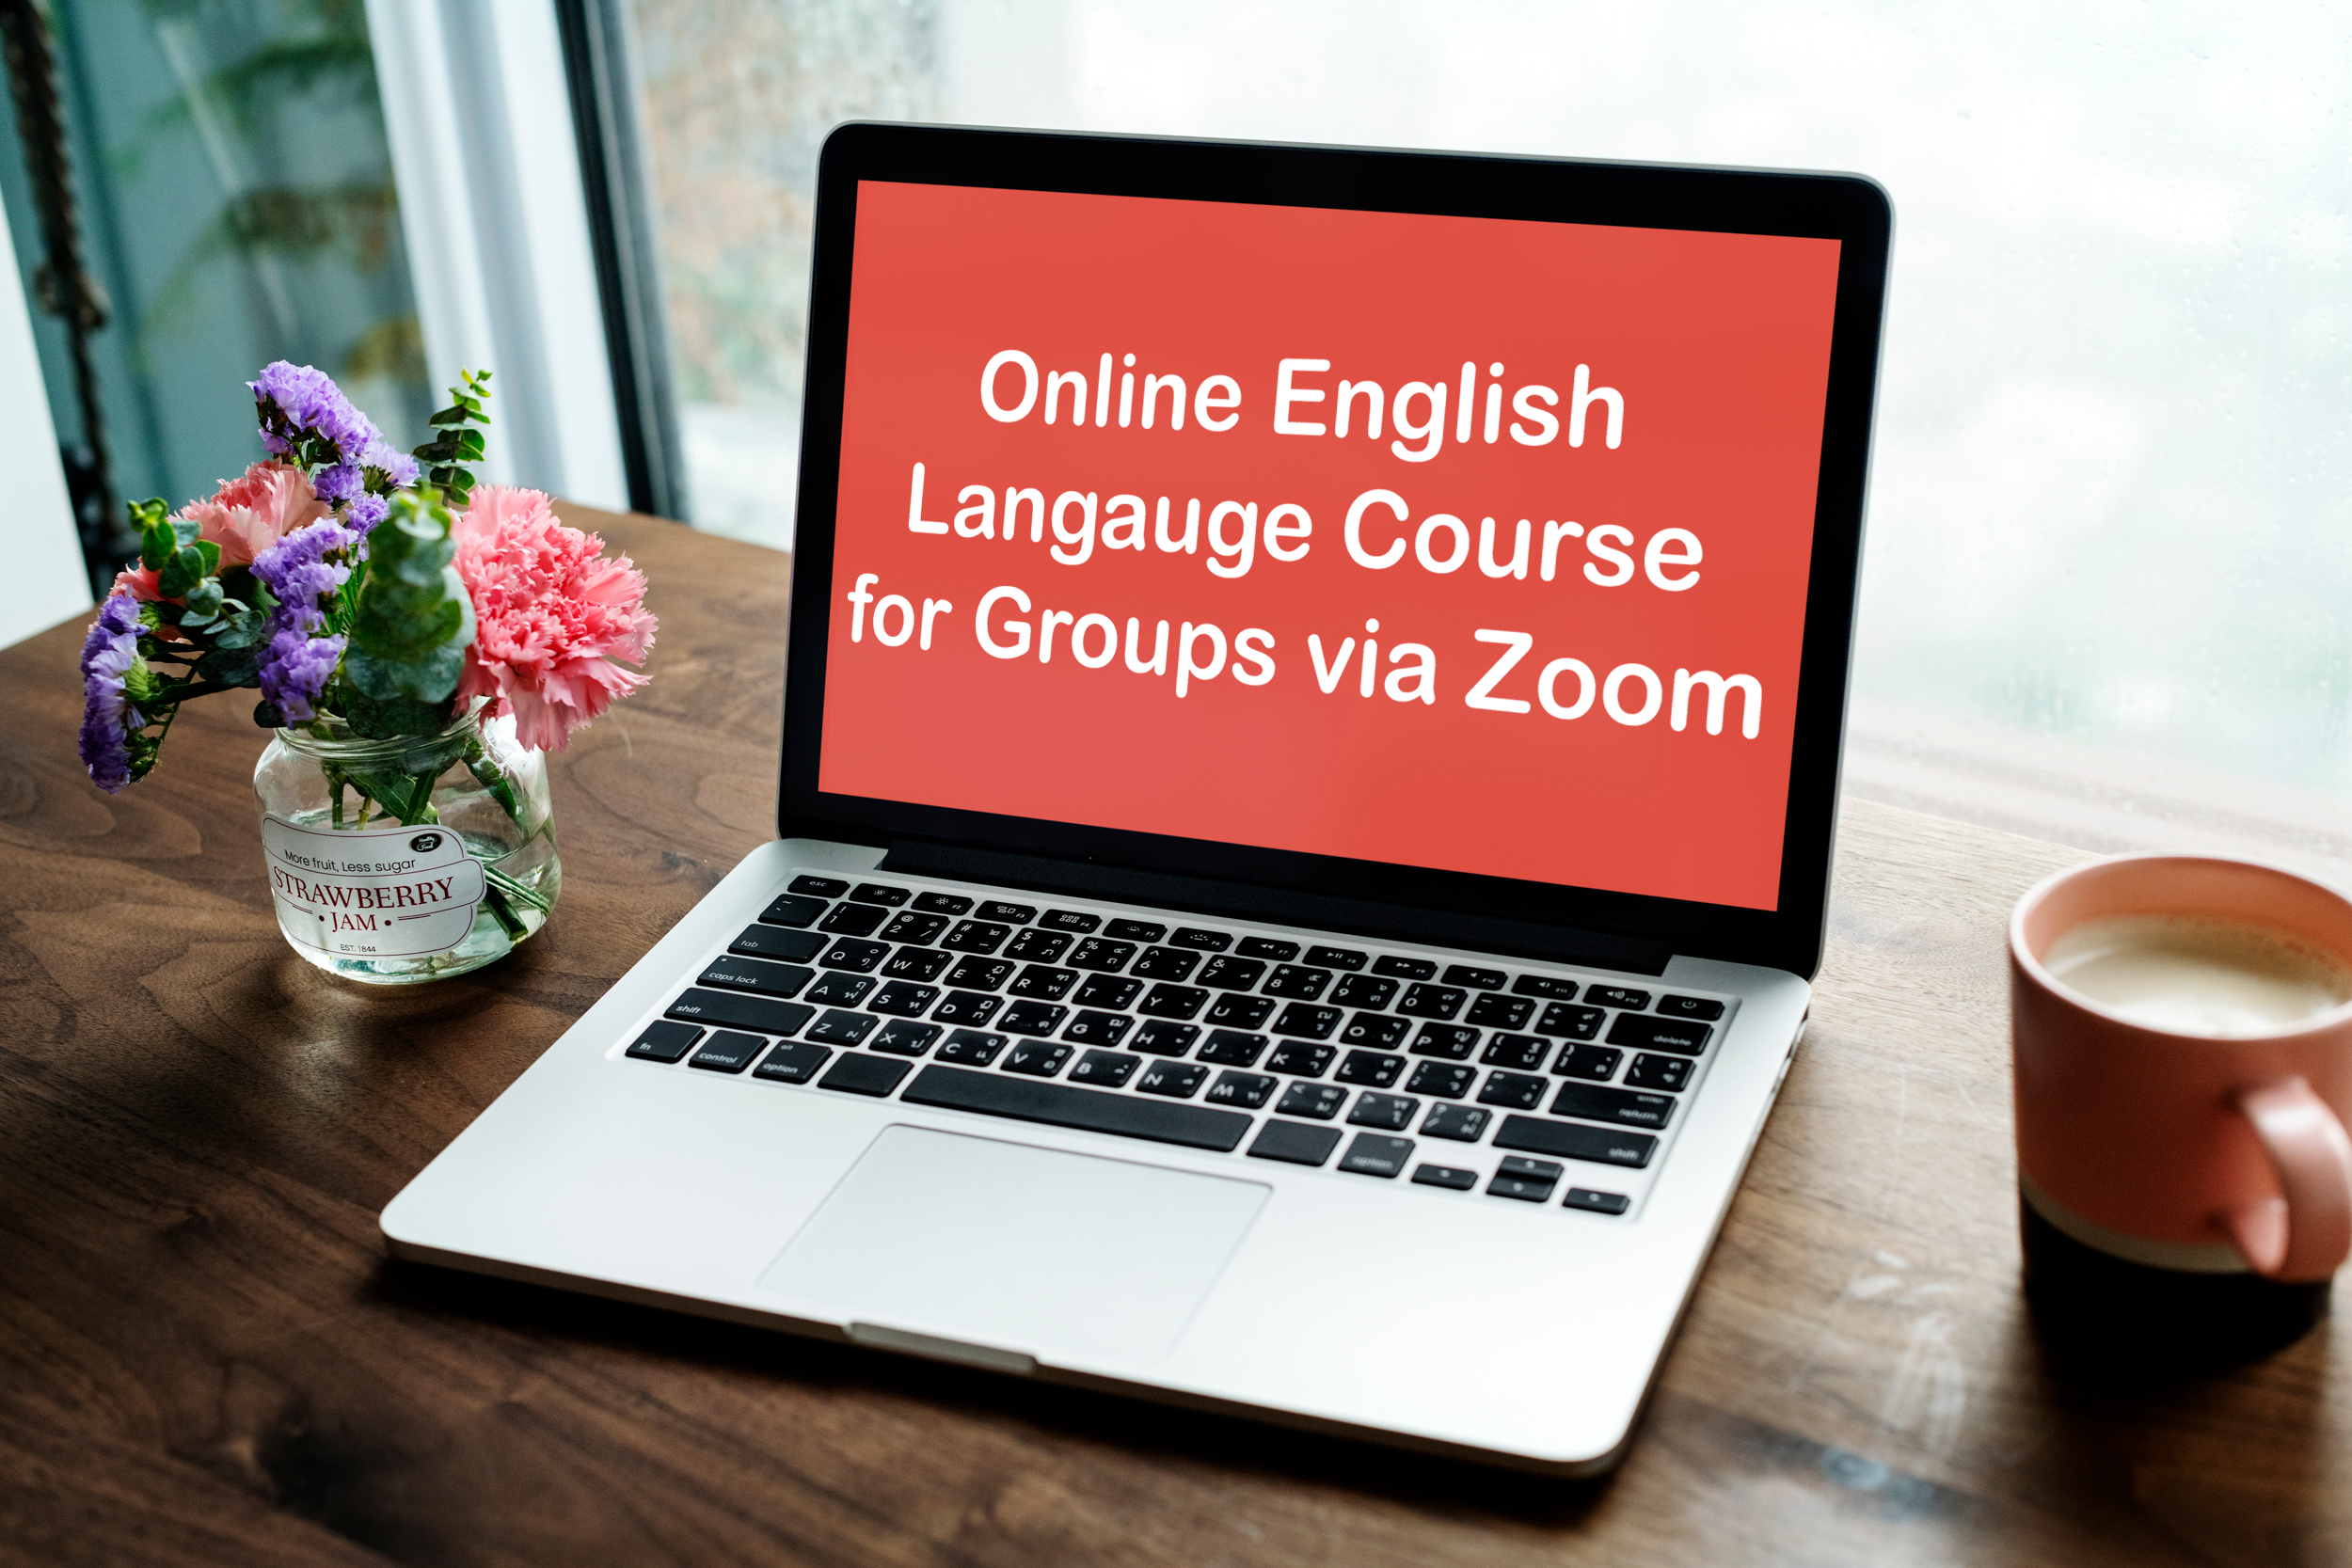 Online English Langauge Course for Groups